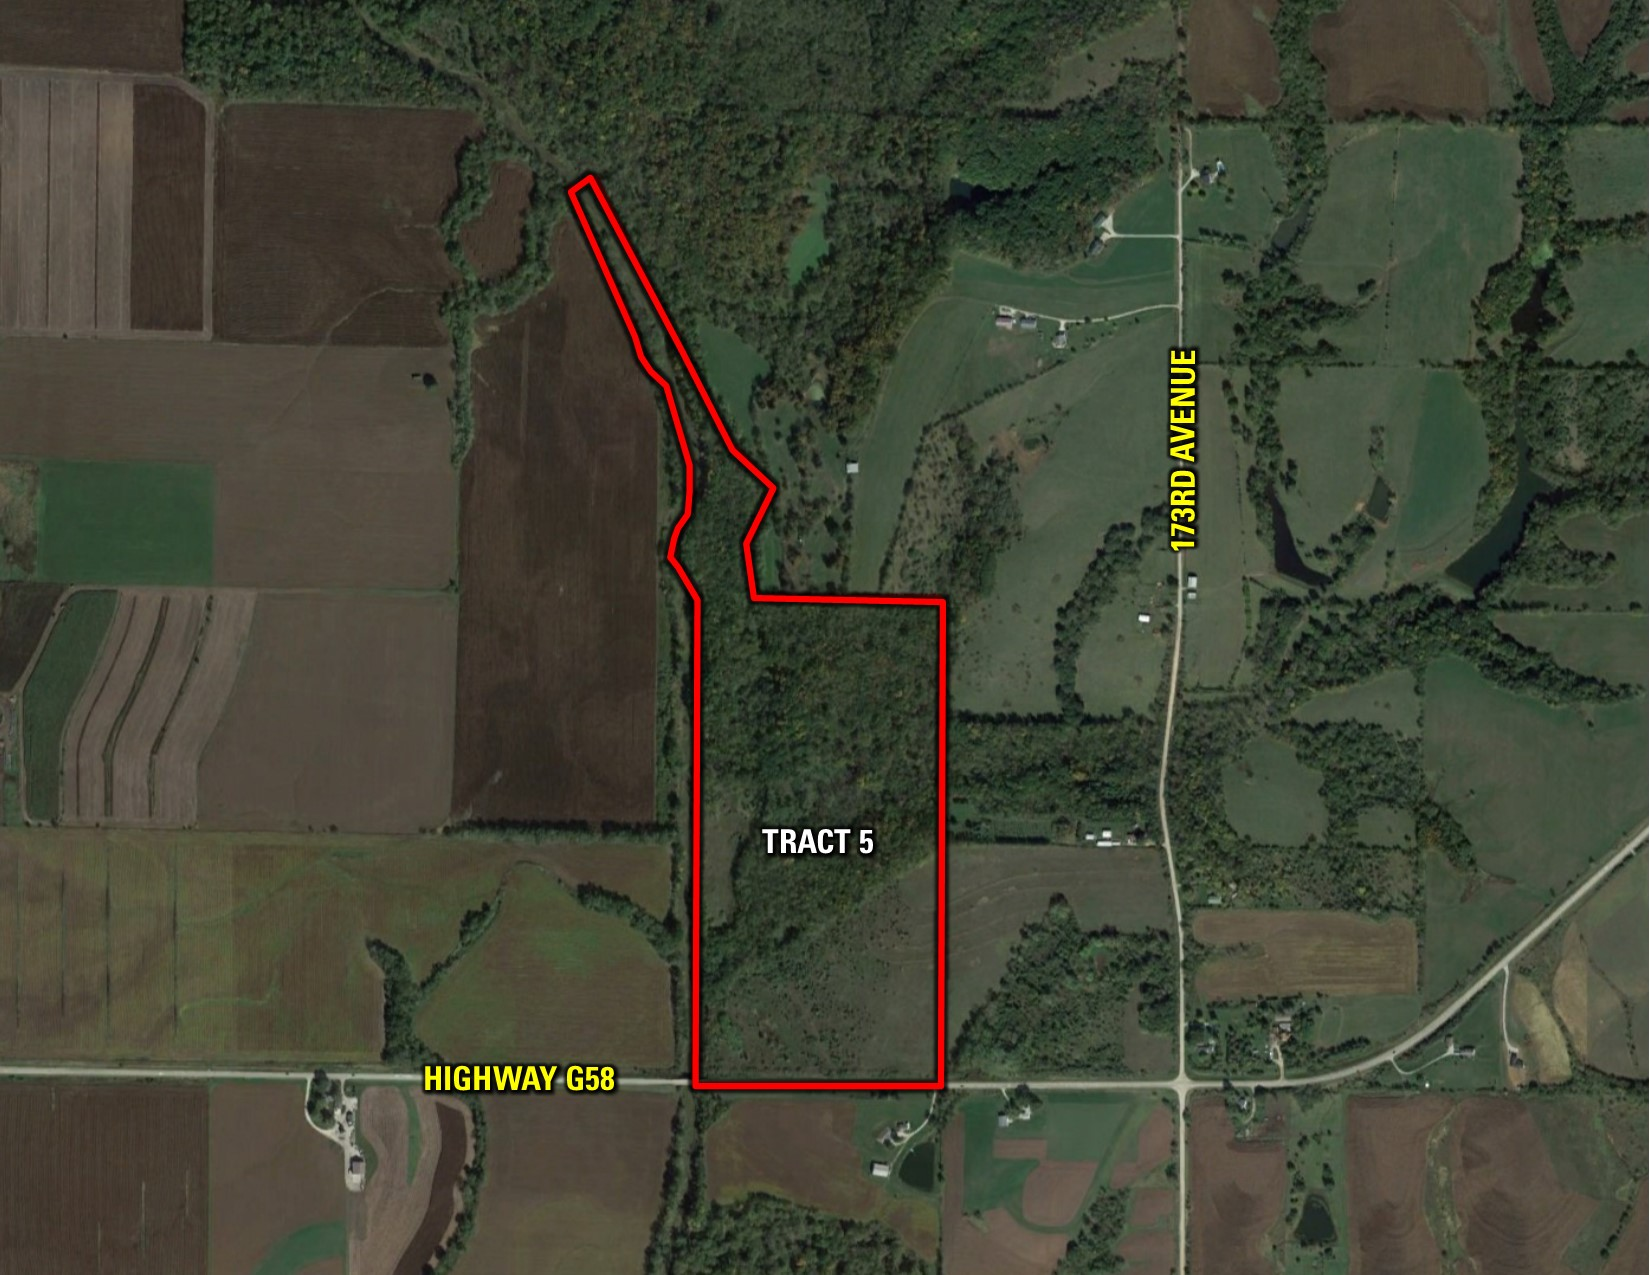 Warren County Auction - Tract 5 - Google 1